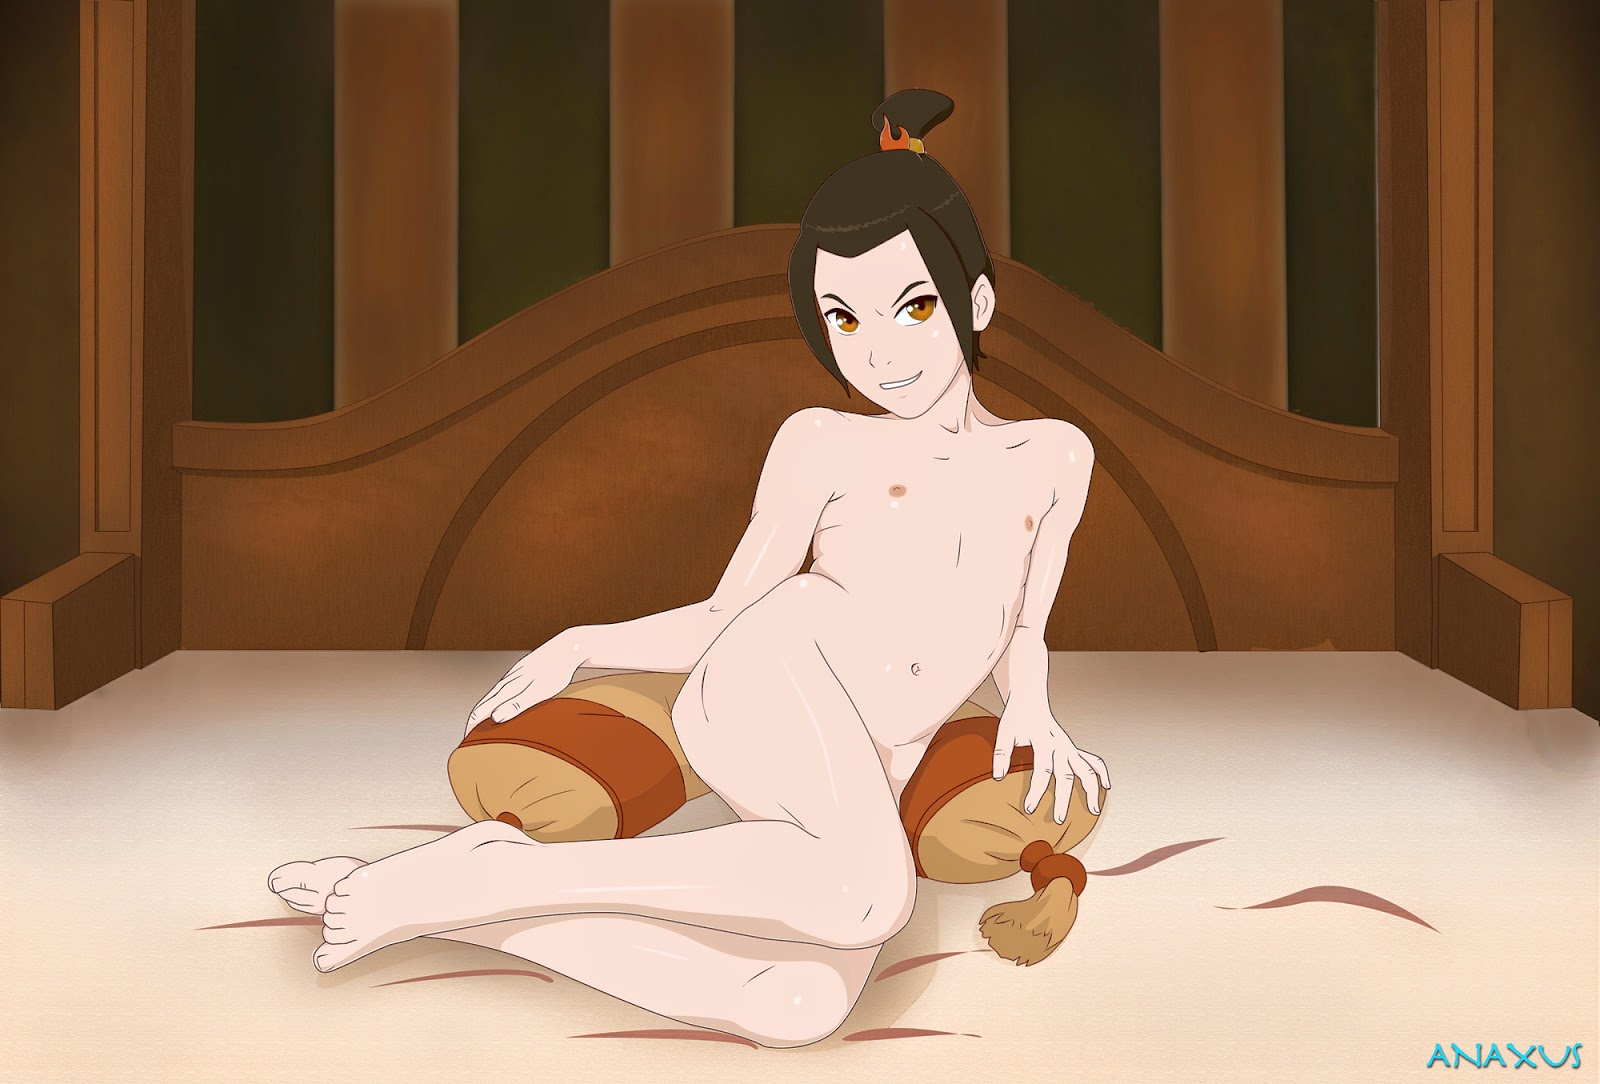 Avatar The Last Airbender Pooping Nude